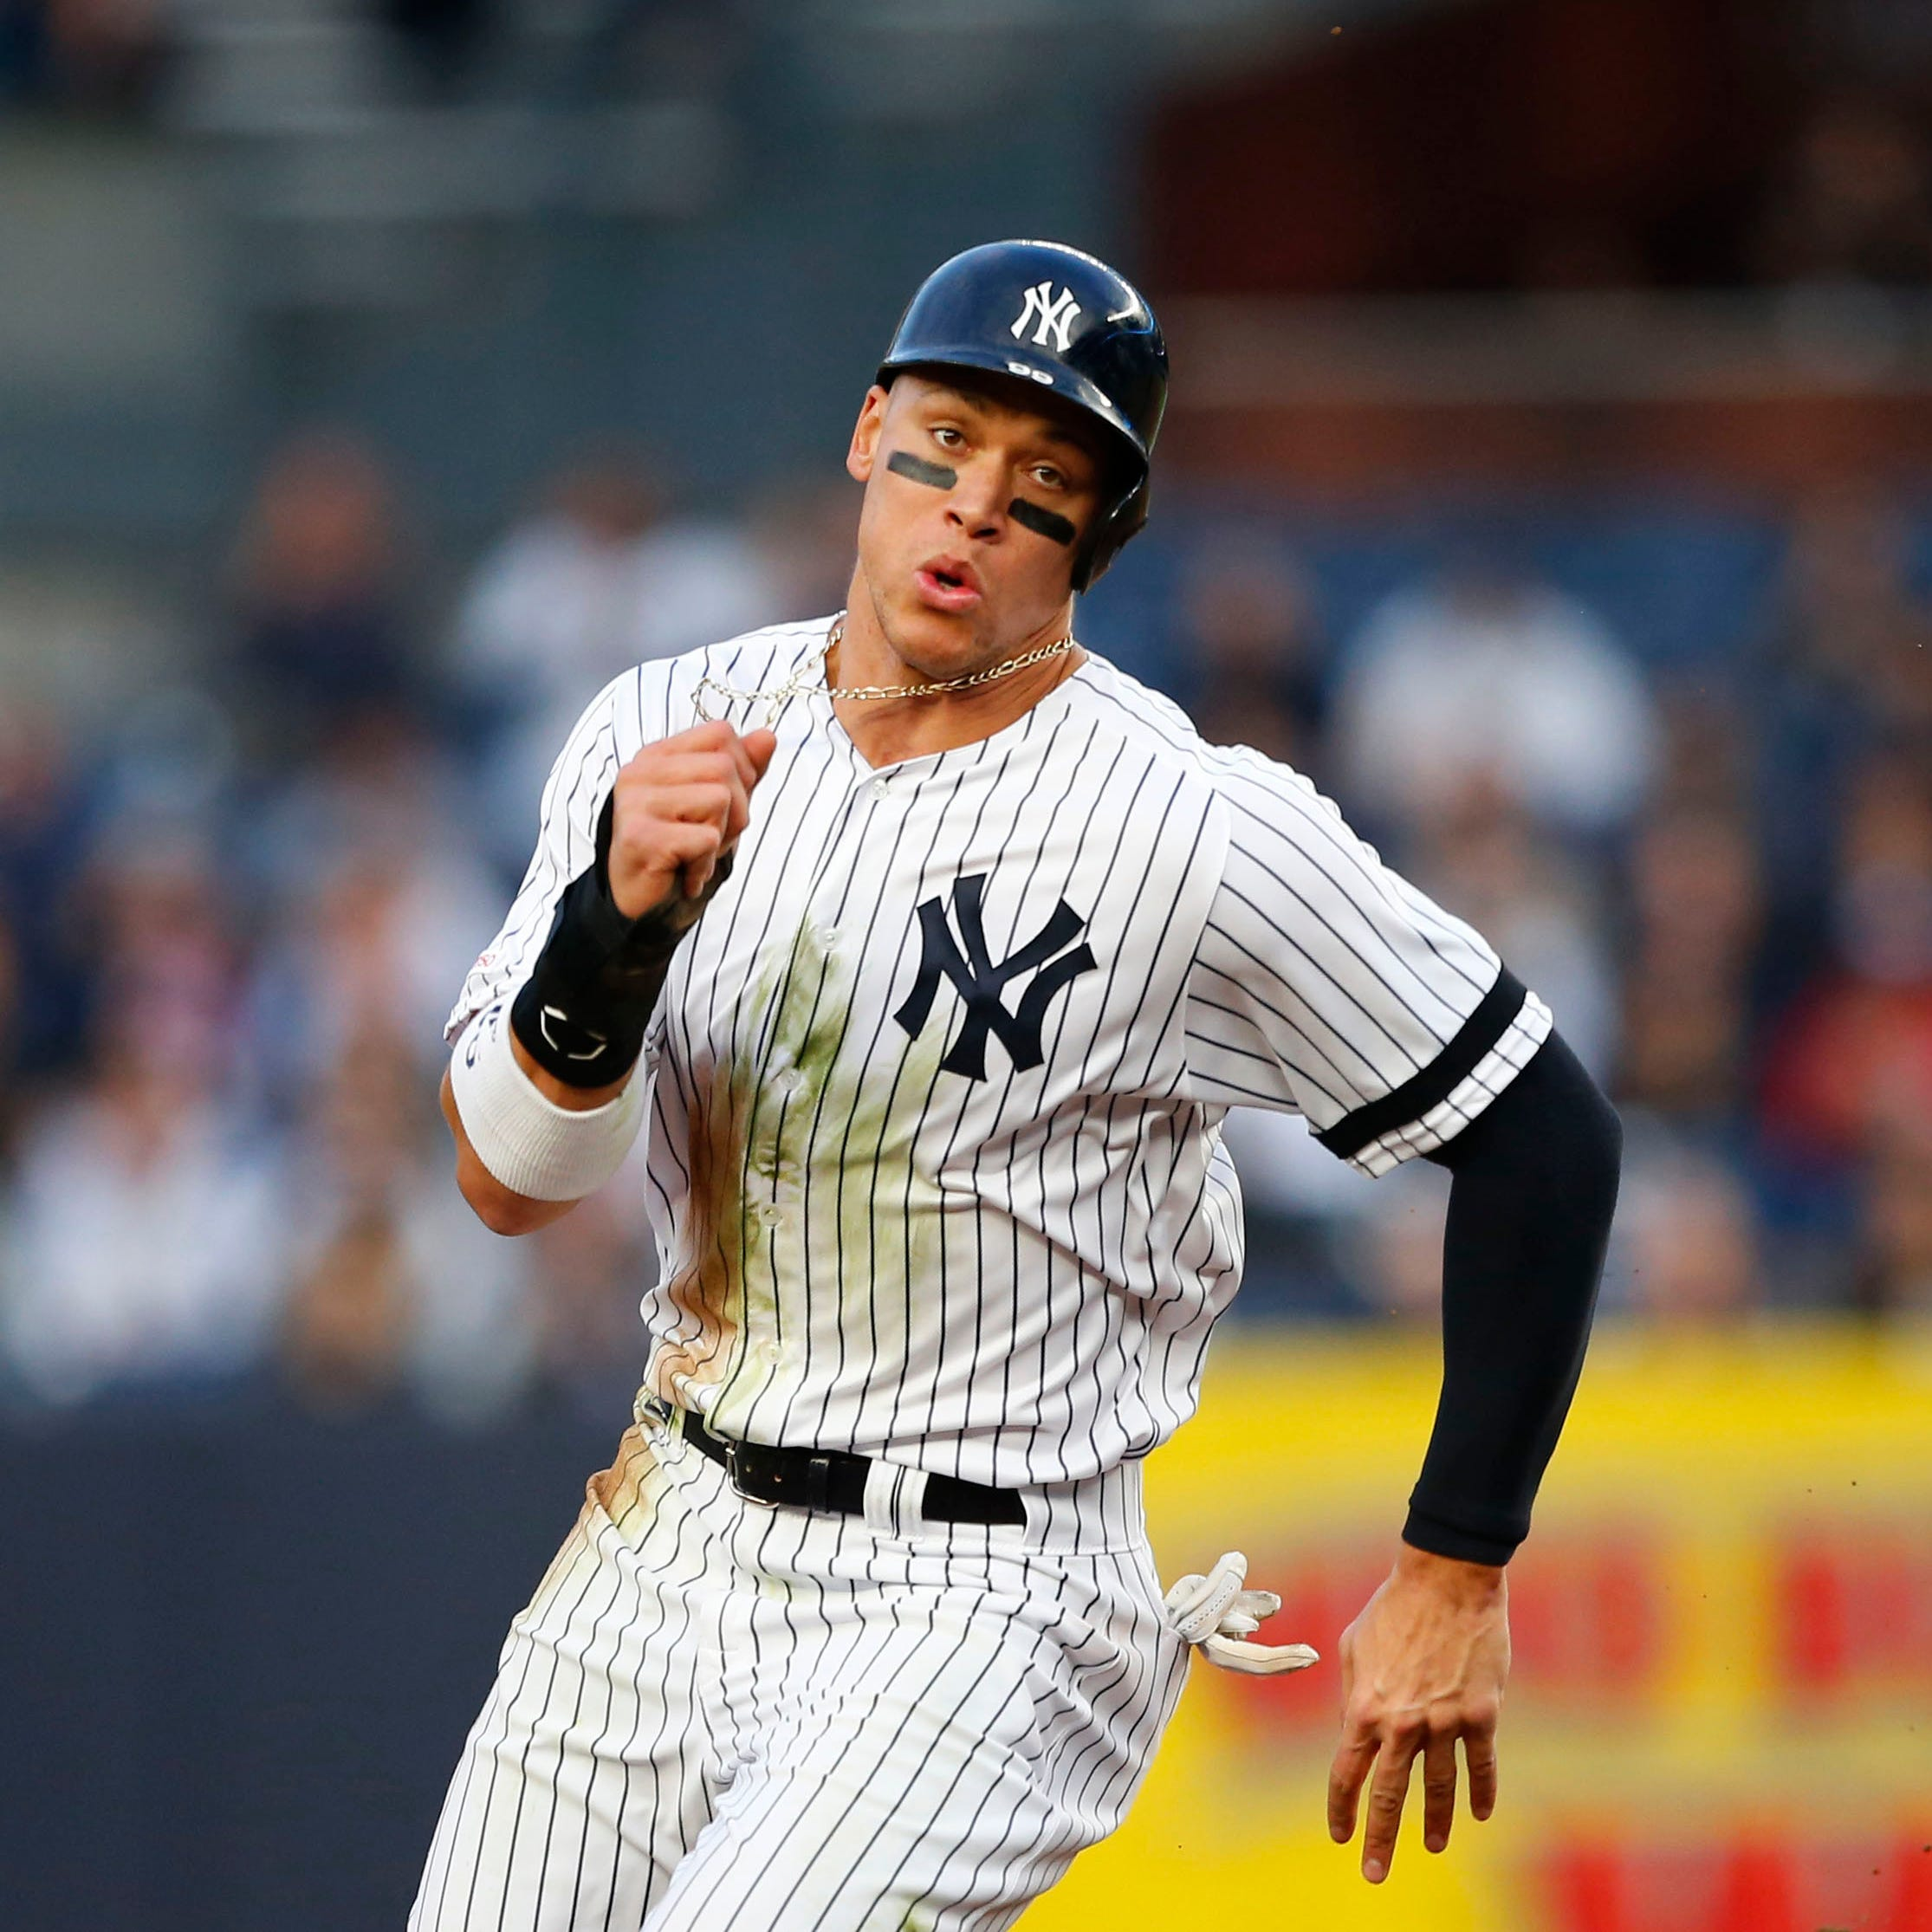 Yankees outfielder Aaron Judge sent to IL with 'pretty significant' oblique strain